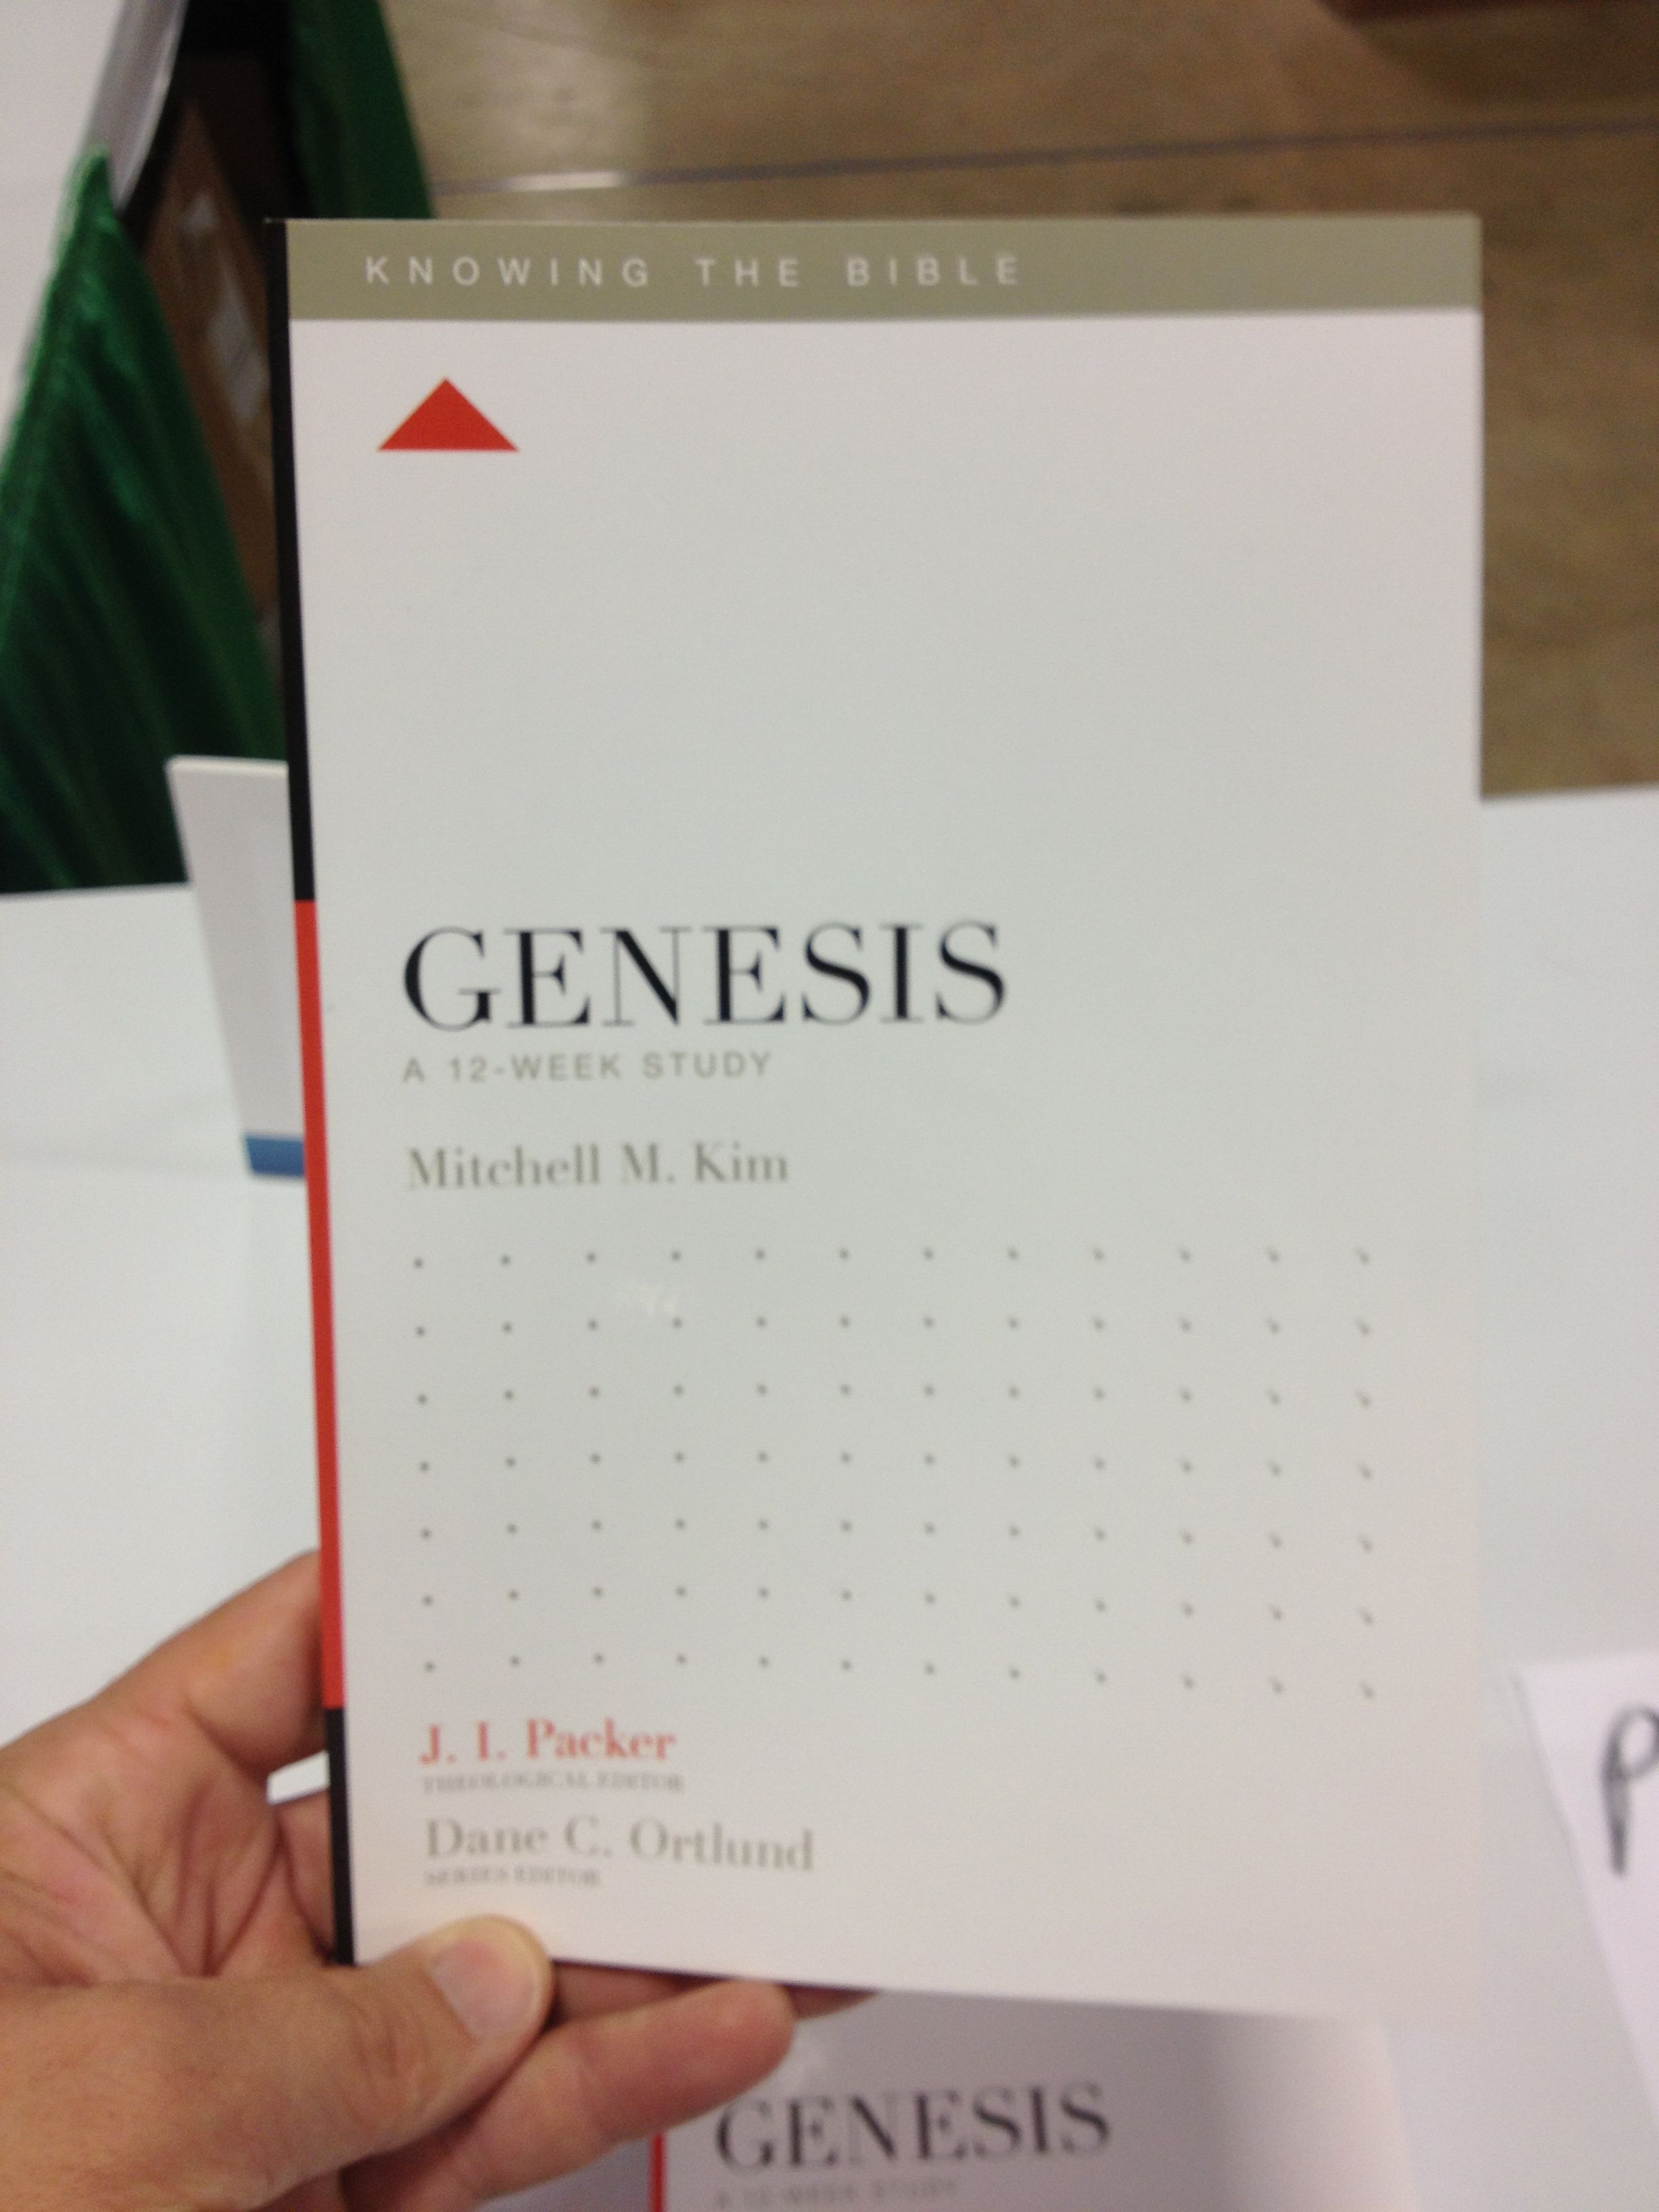 Knowing the Bible Genesis study by Crossway